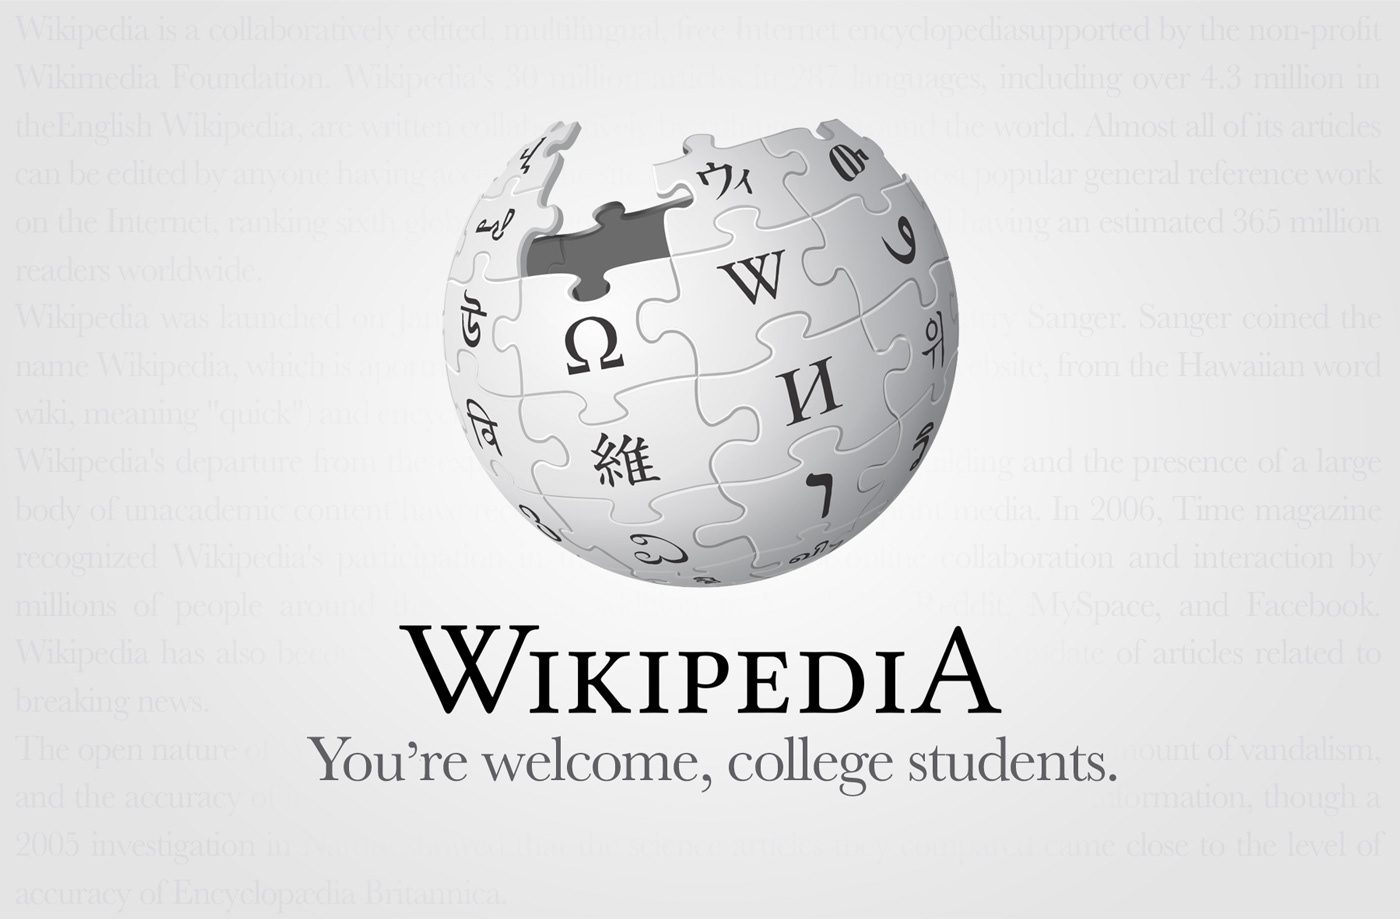 wikipedia - you're welcome college students